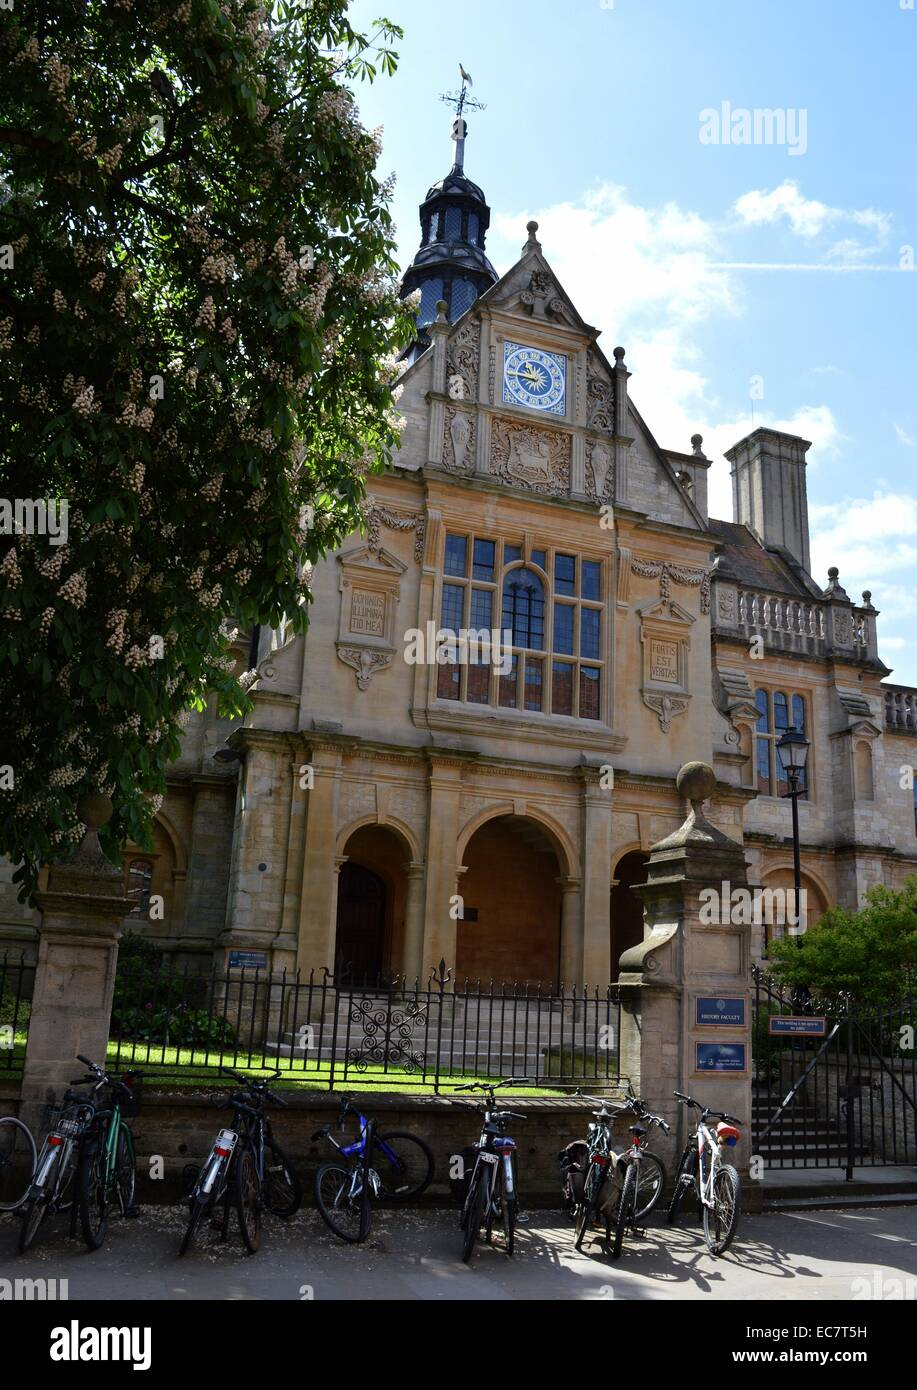 history faculty at Oxford university, Oxford, England - Stock Image